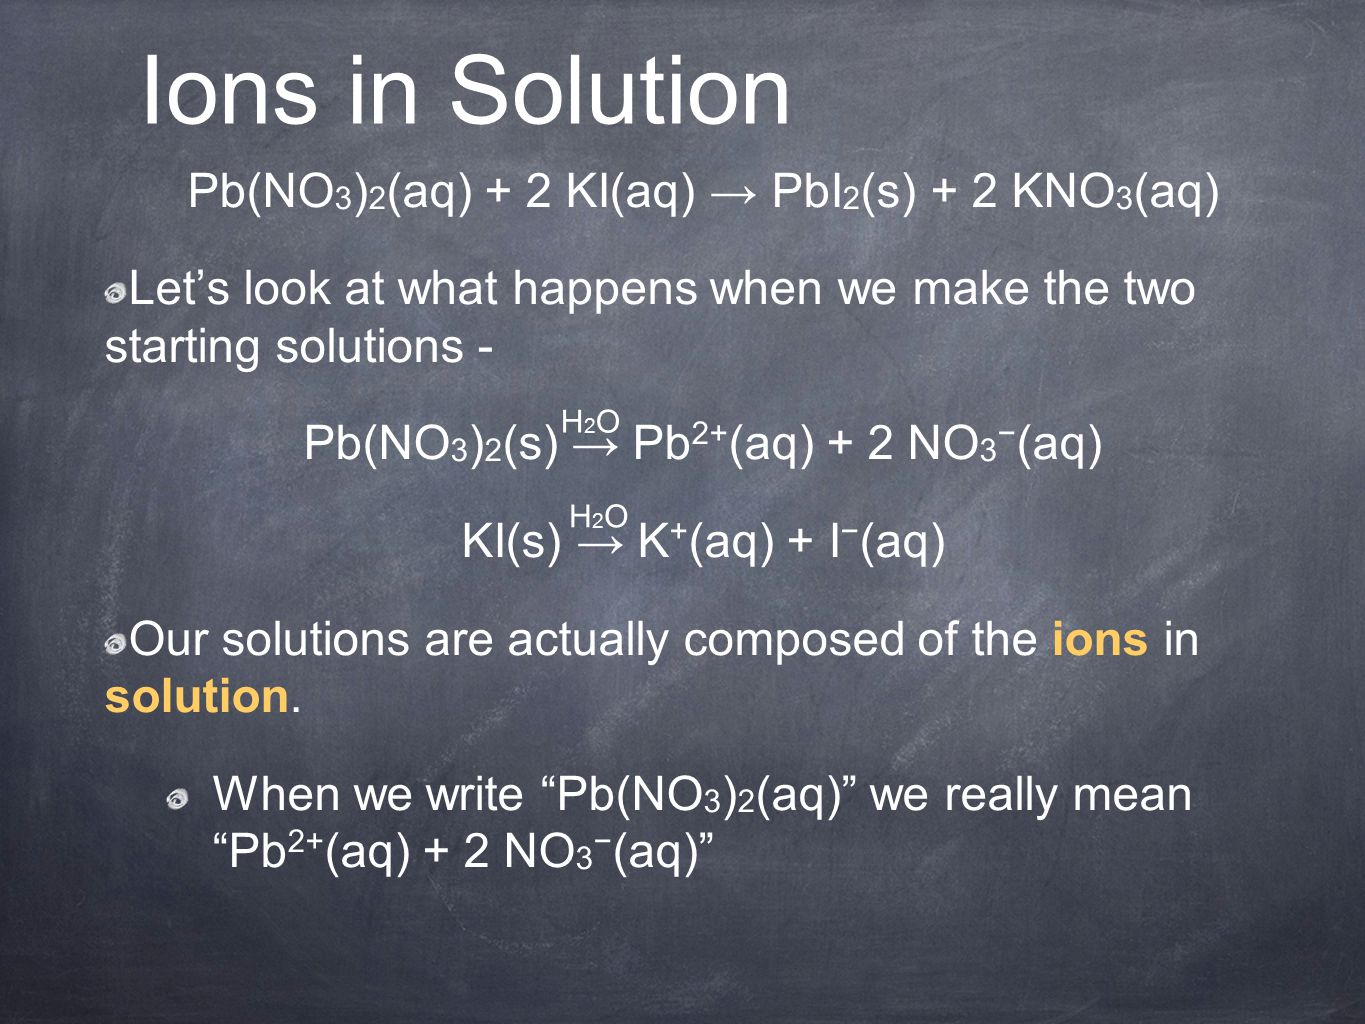 Ions in Solution Pb(NO 3 ) 2 (aq) + 2 KI(aq) → PbI 2 (s) + 2 KNO 3 (aq) Let's look at what happens when we make the two starting solutions - Pb(NO 3 ) 2 (s) → Pb 2+ (aq) + 2 NO 3 − (aq) KI(s) → K + (aq) + I − (aq) Our solutions are actually composed of the ions in solution.